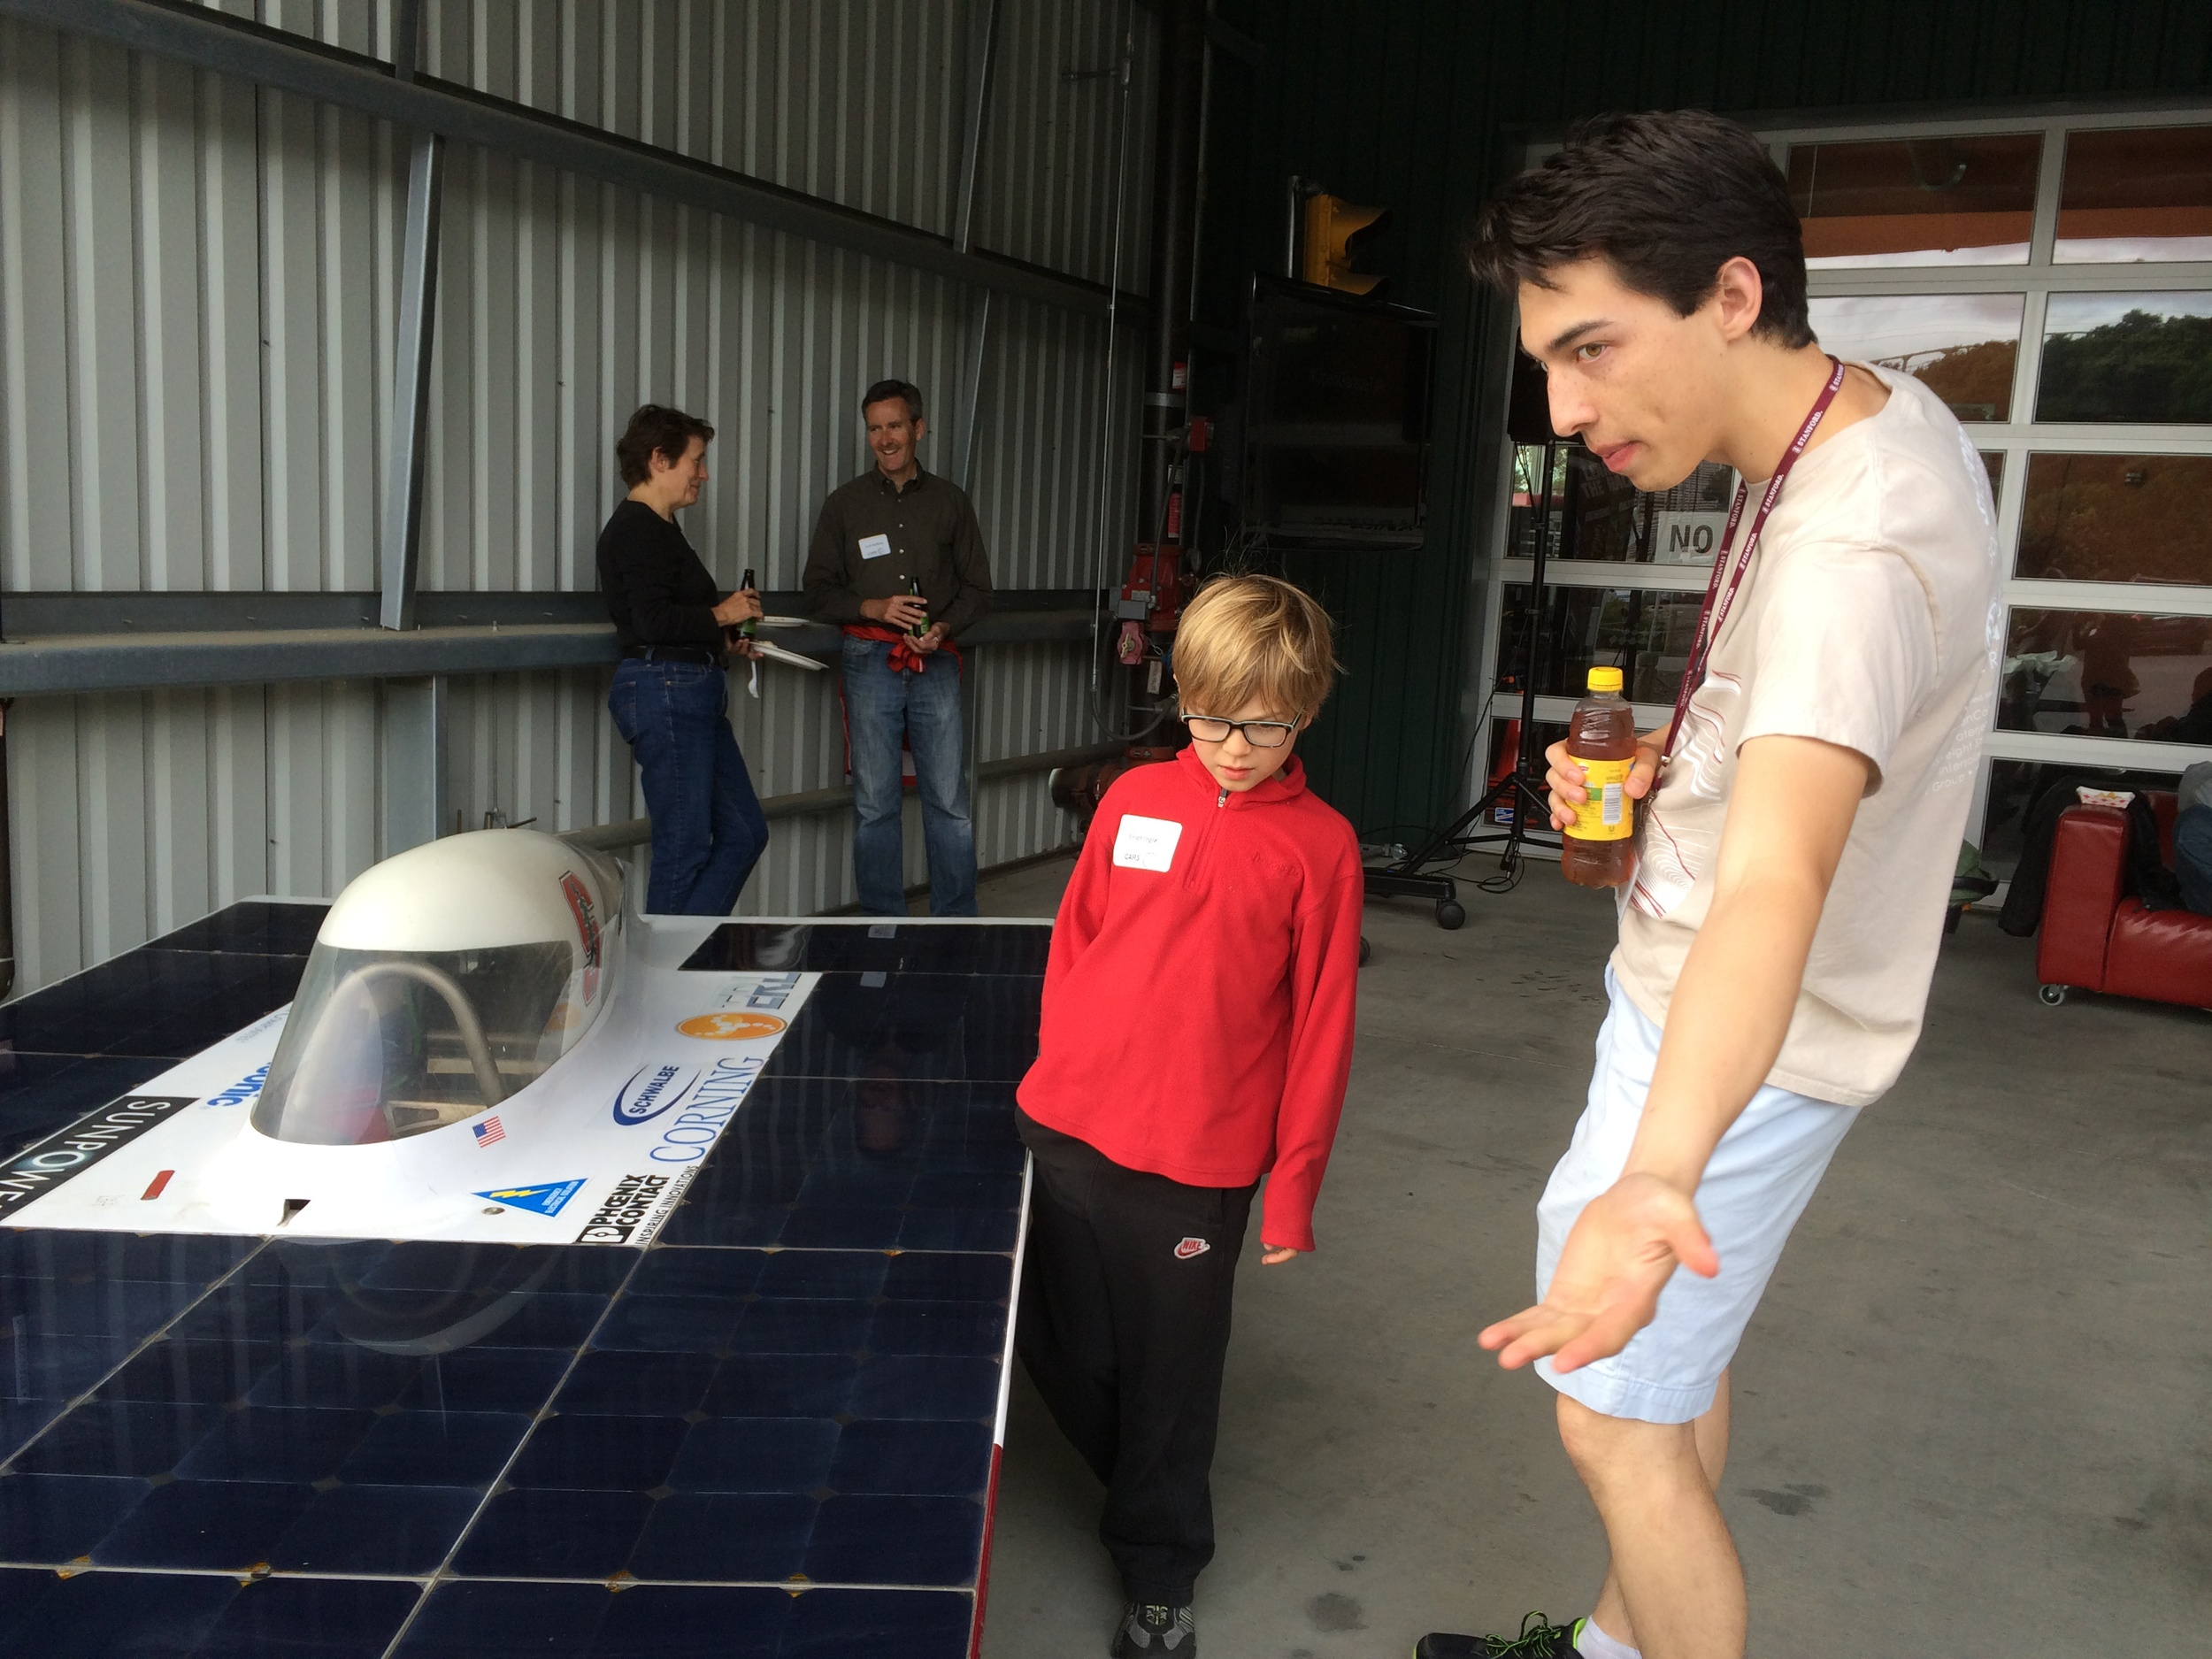 Three Stanford Solar Cars were on display. Richard Lui tells Elliot about Xenith, which competed in the 2011 World Solar Challenge.